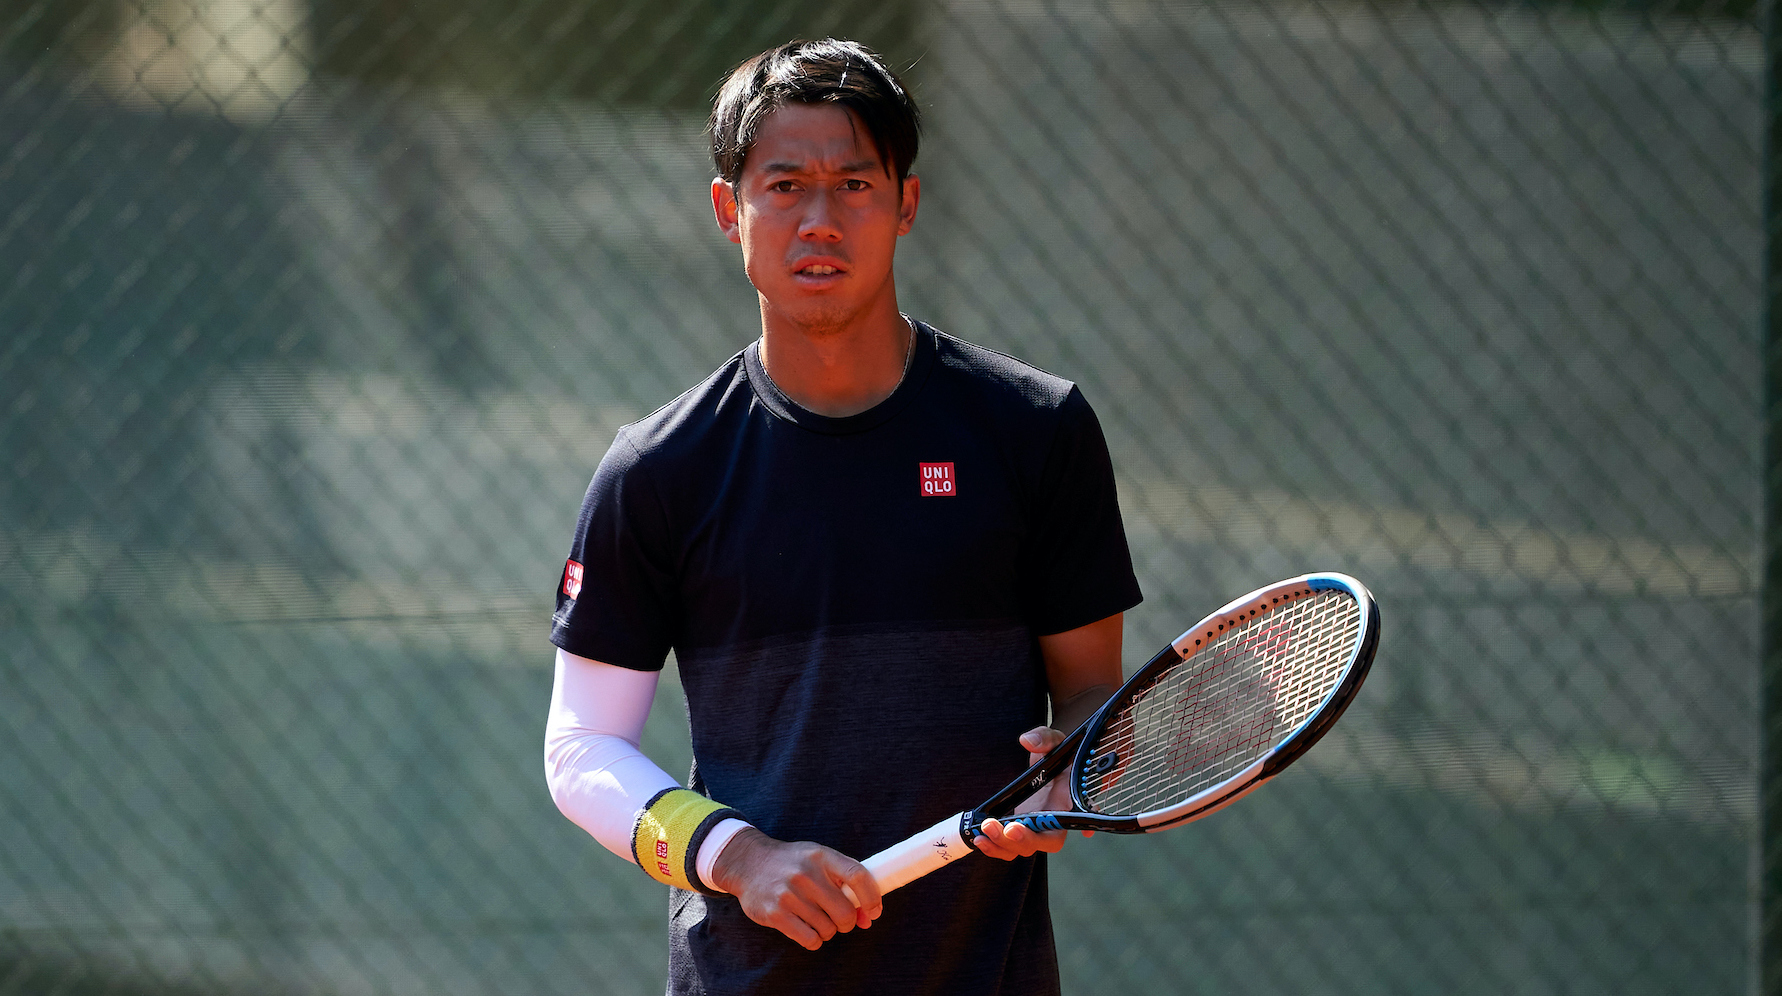 BARCELONA, SPAIN - APRIL 17: Kei Nishikori of Japan ATP Barcelona Open Banc Sabadell at the Real Club de Tenis Barcelona on April 17, 2021 in Barcelona, Spain. (Photo by Manuel Queimadelos/Quality Sport Images)